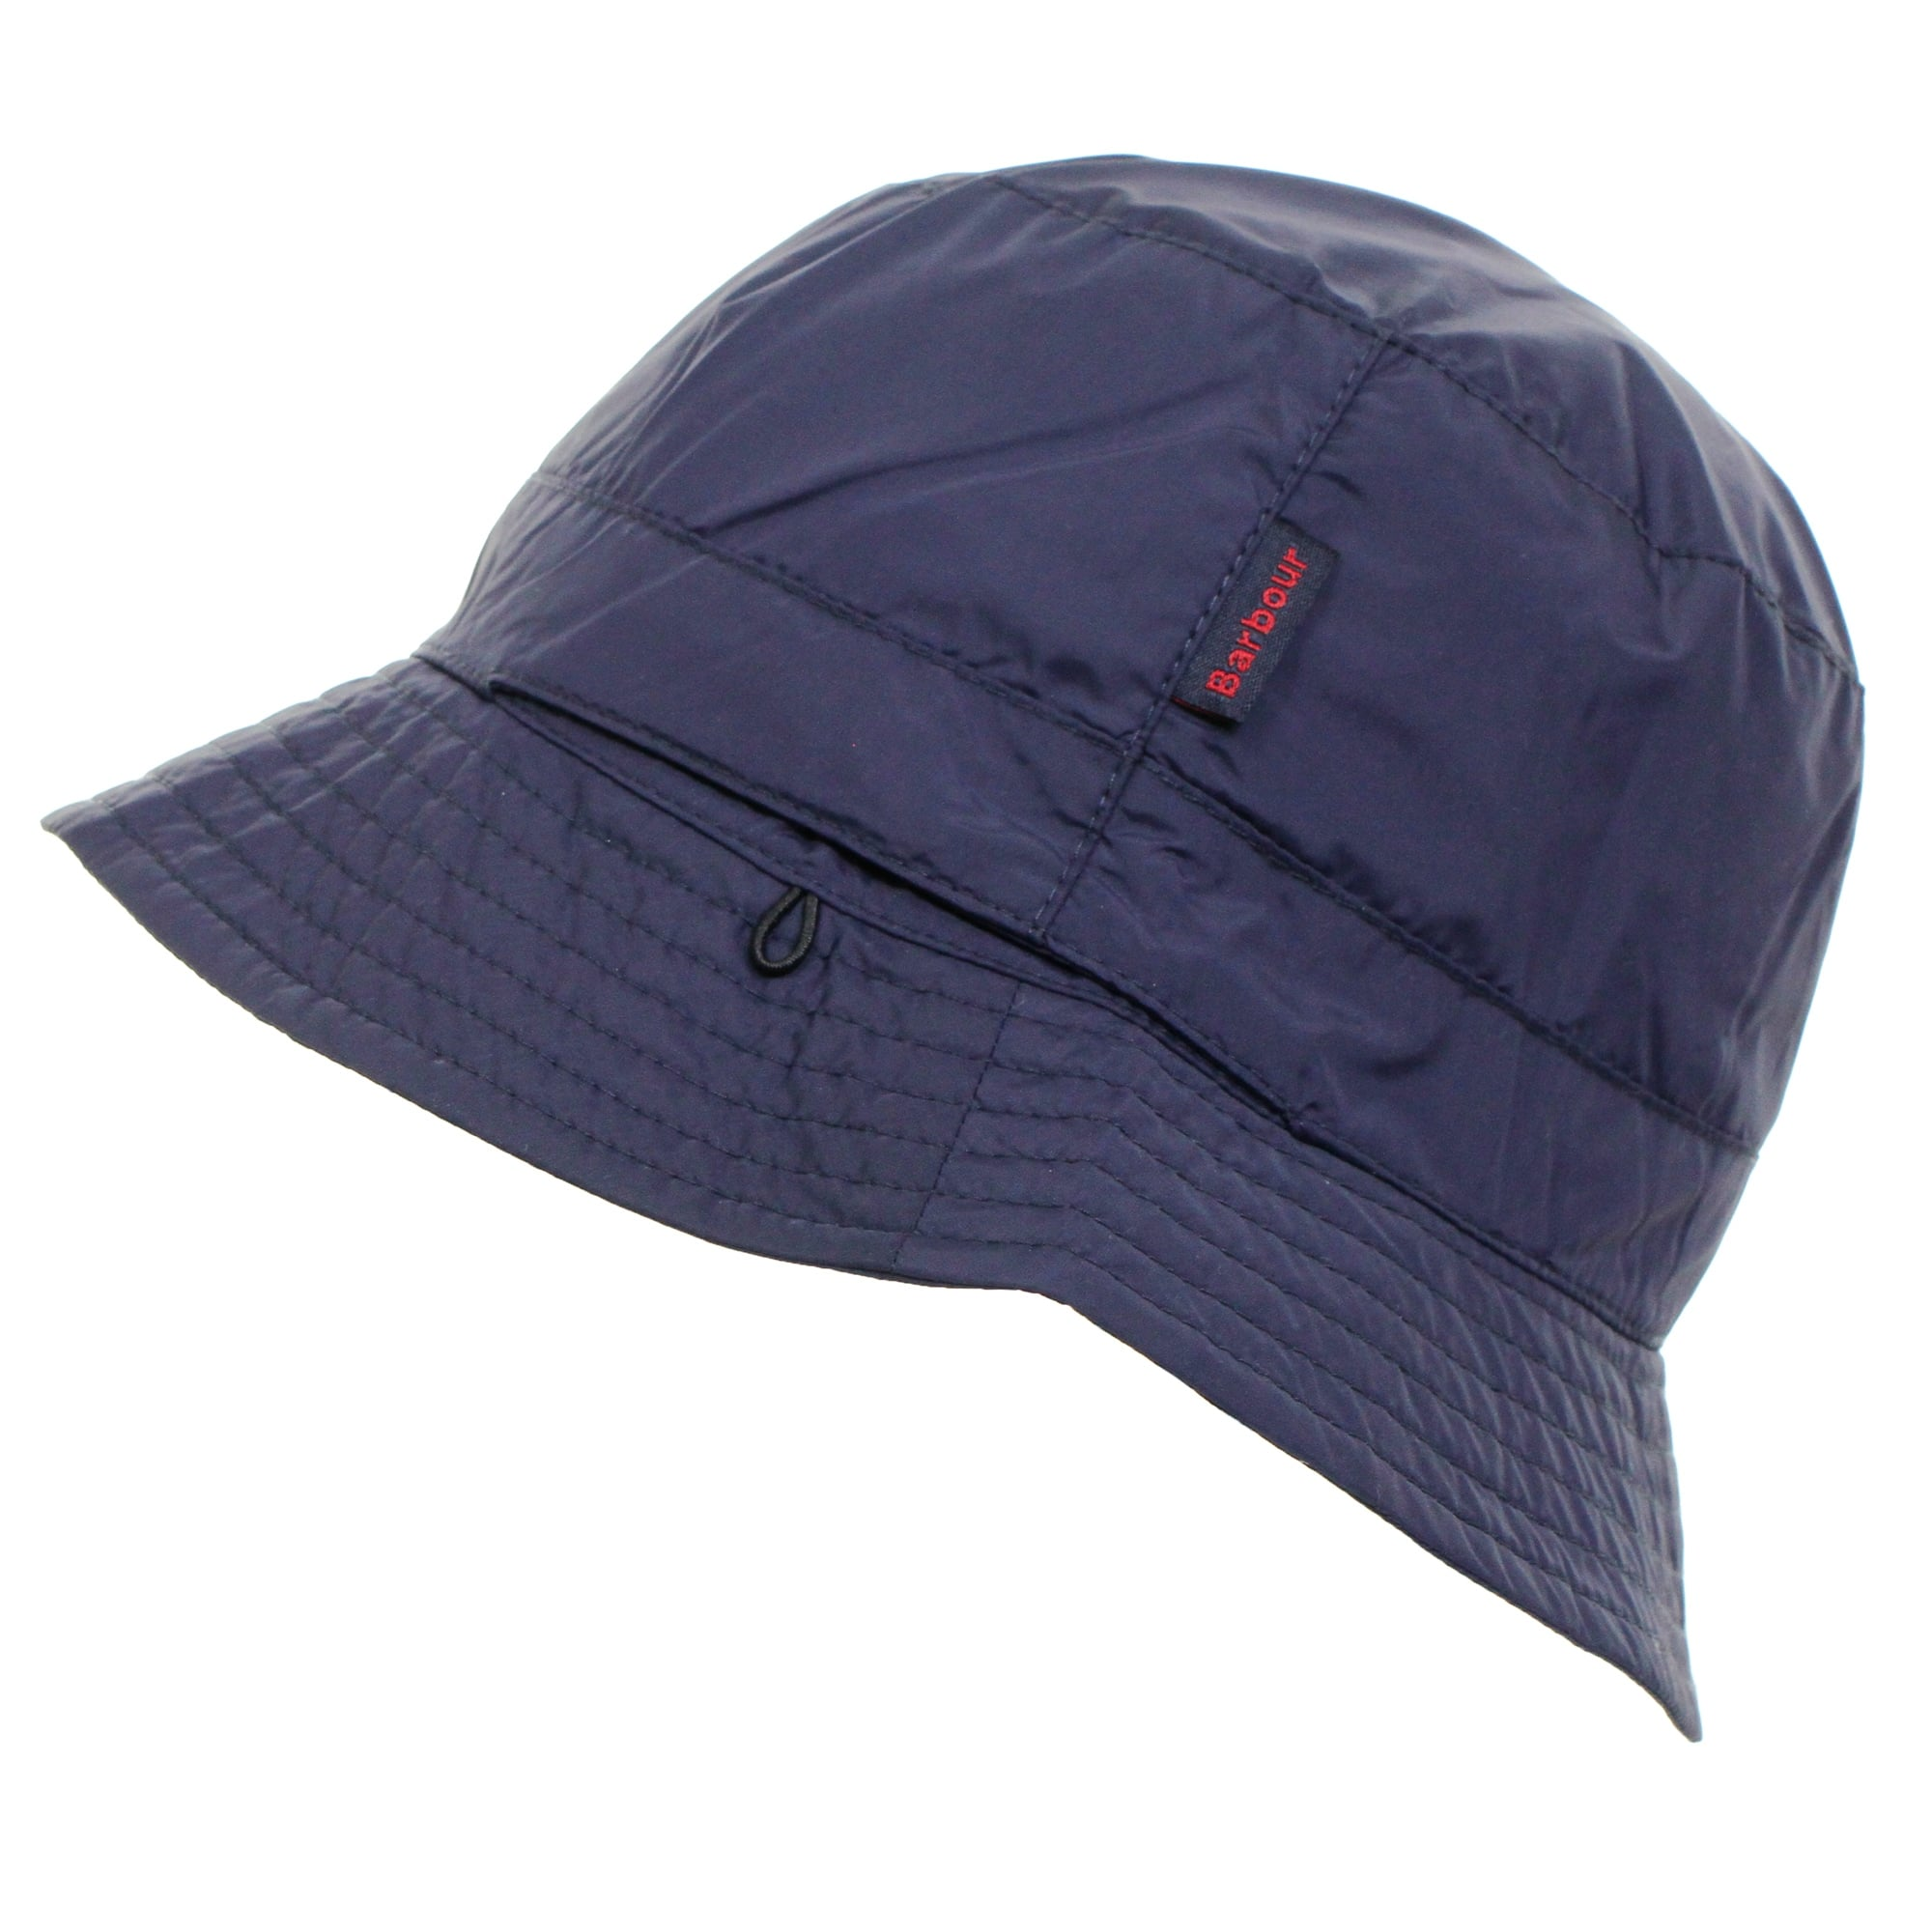 barbour-accessories-barbour-taran-sports-navy-bucket-hat-mha0419ny91-p26475-105073_image